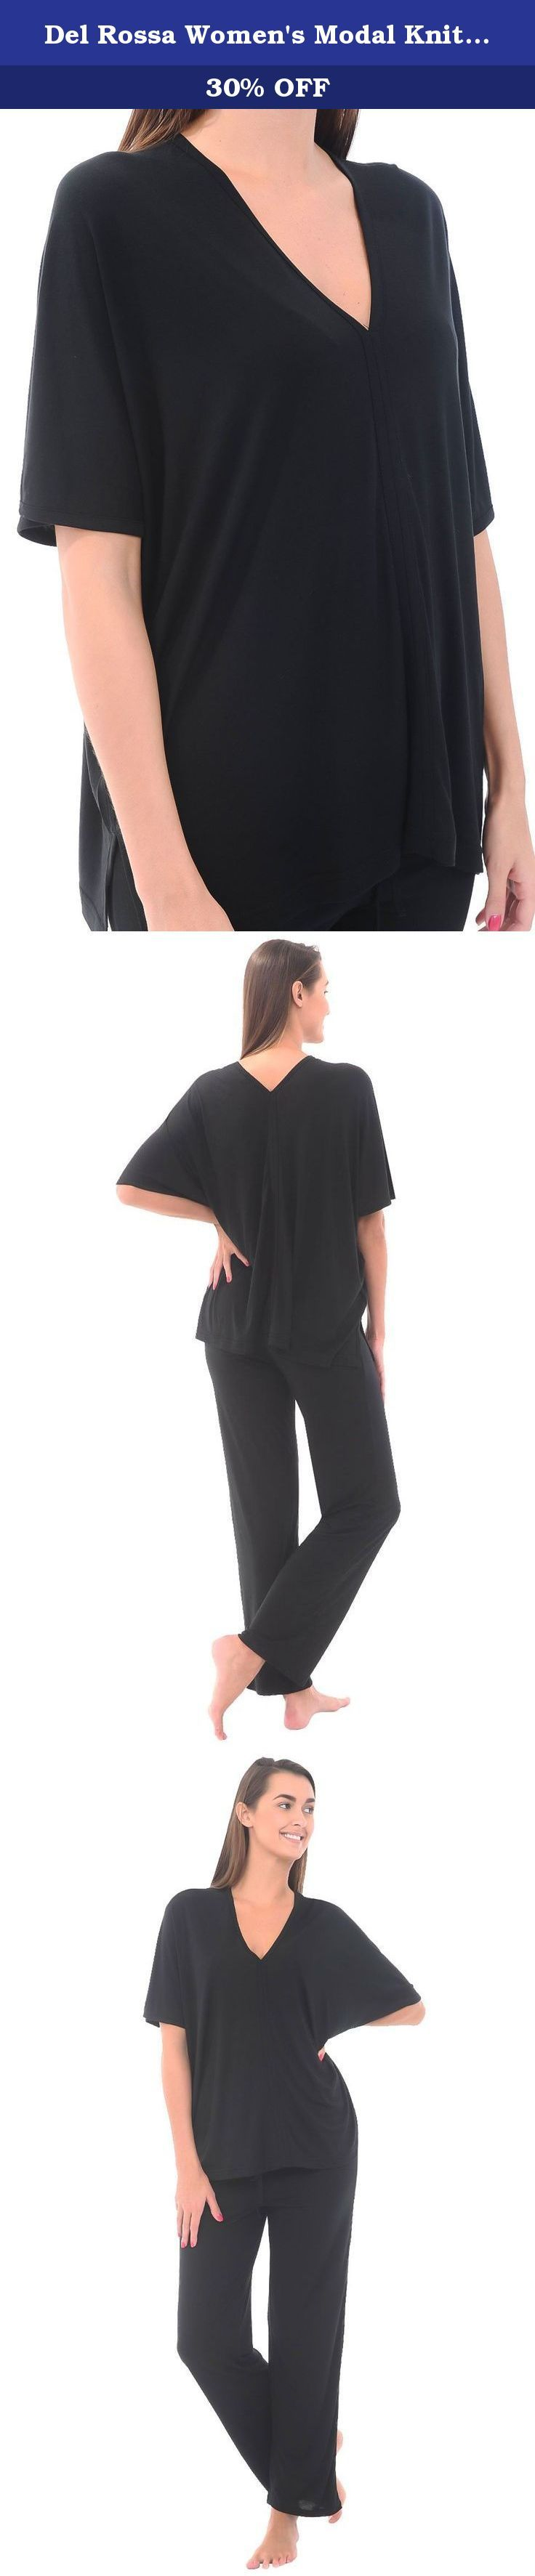 Del Rossa Women's Modal Knit Pajamas, Long Loose V-Neck Pj Set, Medium Black (A0412BLKMD). These soft, long knit pajamas from Alexander Del Rossa are comfortable, durable, and classy. Made from a premium 65% modal, 35% polyester knit blend, this womens pj set is breathable and easy on the skin. Designed with you in mind, this set is perfect for lounging around the house - even when guests are present. Rich in features, we trust that these pajamas for women will not disappoint. Pajama...